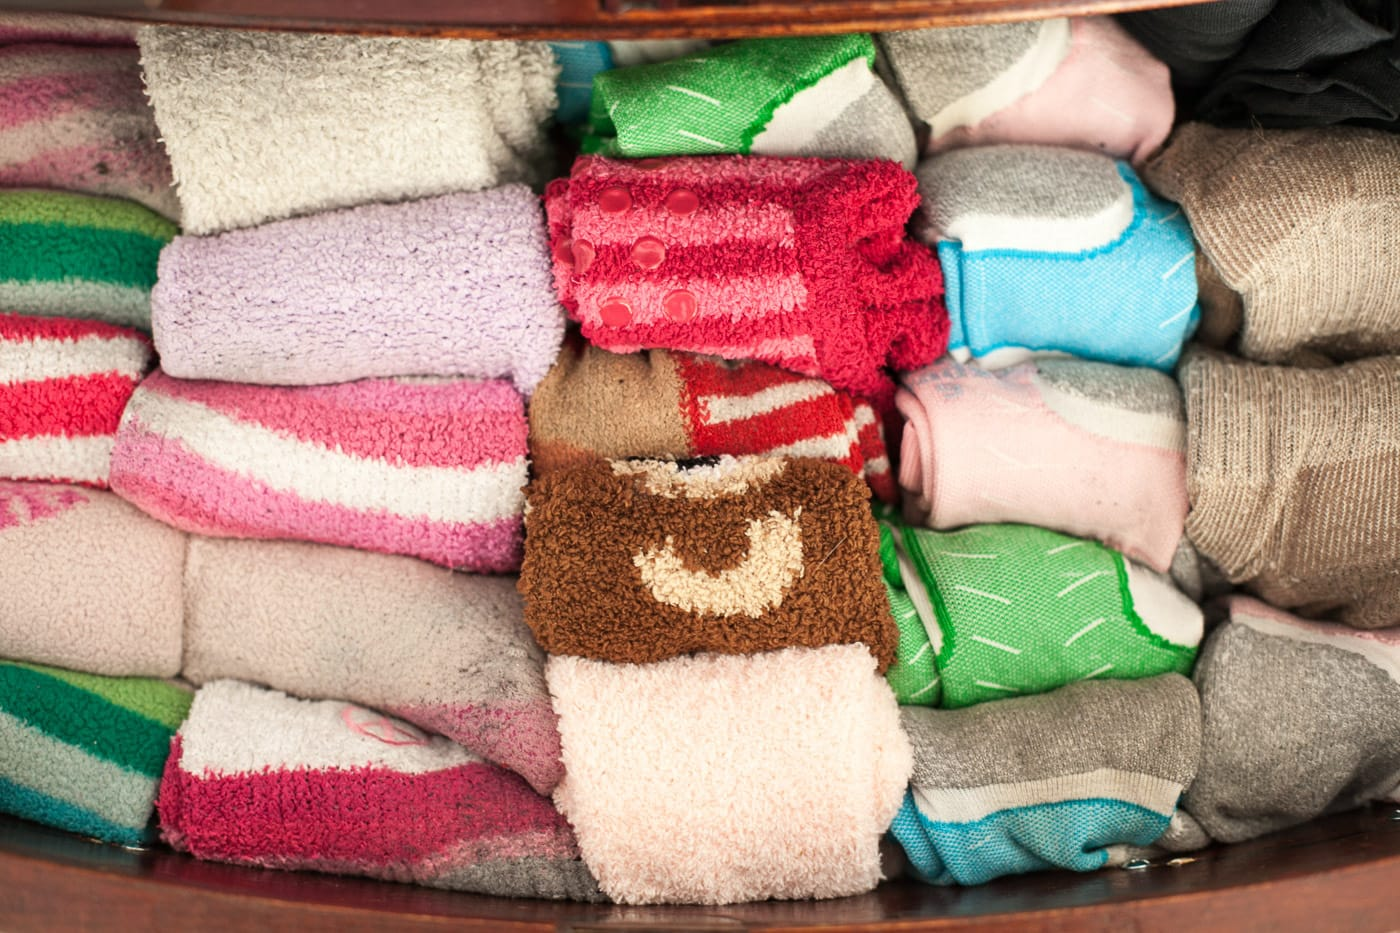 AFTER I don't think KonMari takes into account people who exclusively wear fuzzy rainbow socks but my sock drawer is now more organized than anything I've ever organized before in my life.